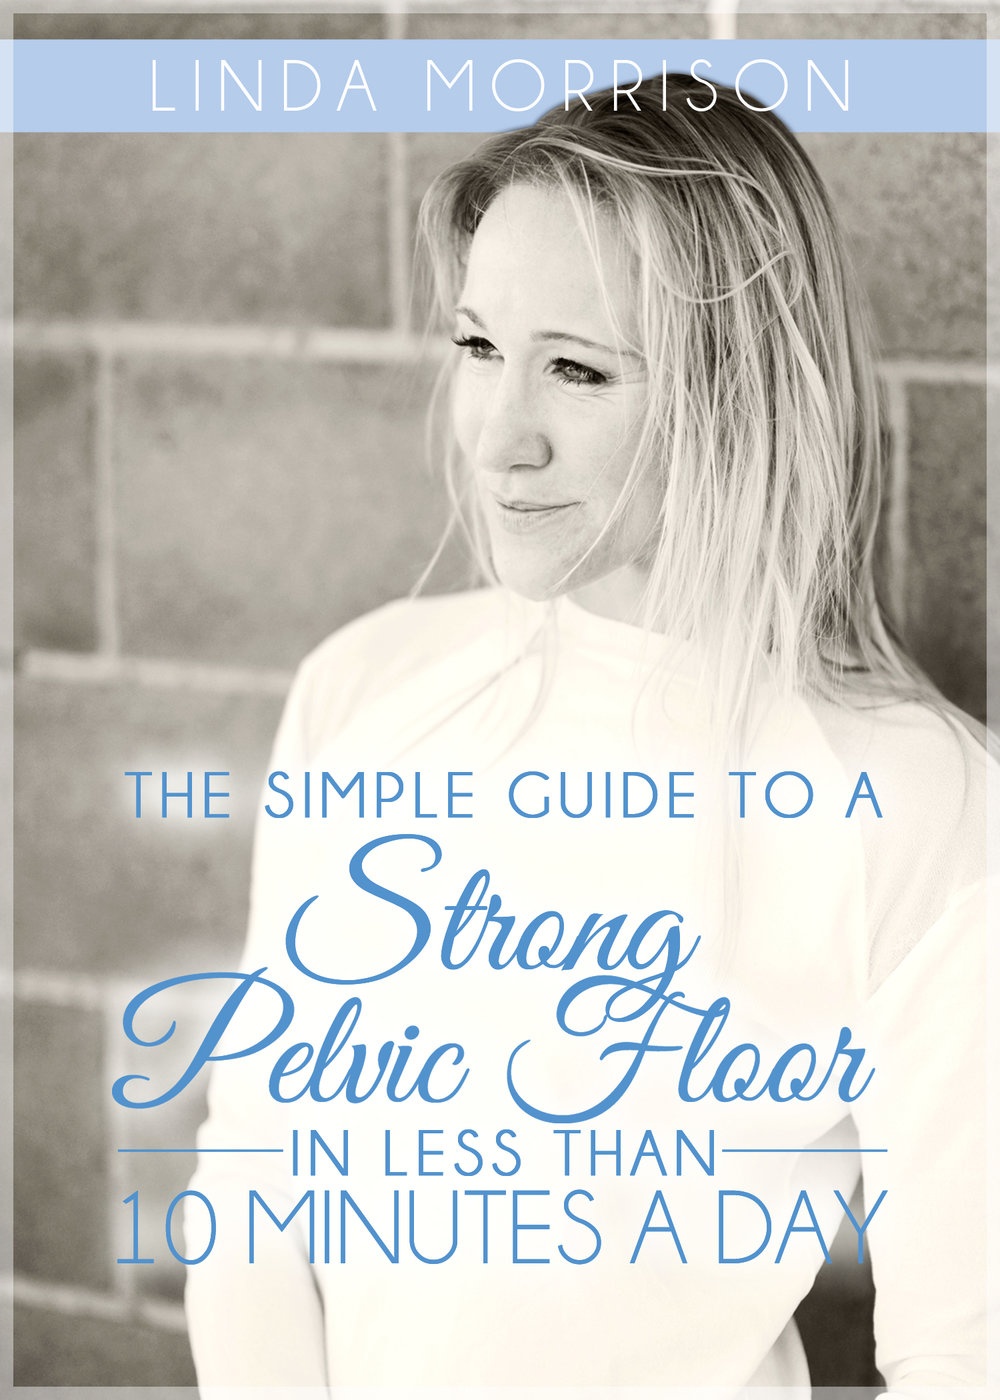 The_simple_guide_to_a_strong_pelvic_floor_in_less_than_10_minutes_a_day (1).jpg